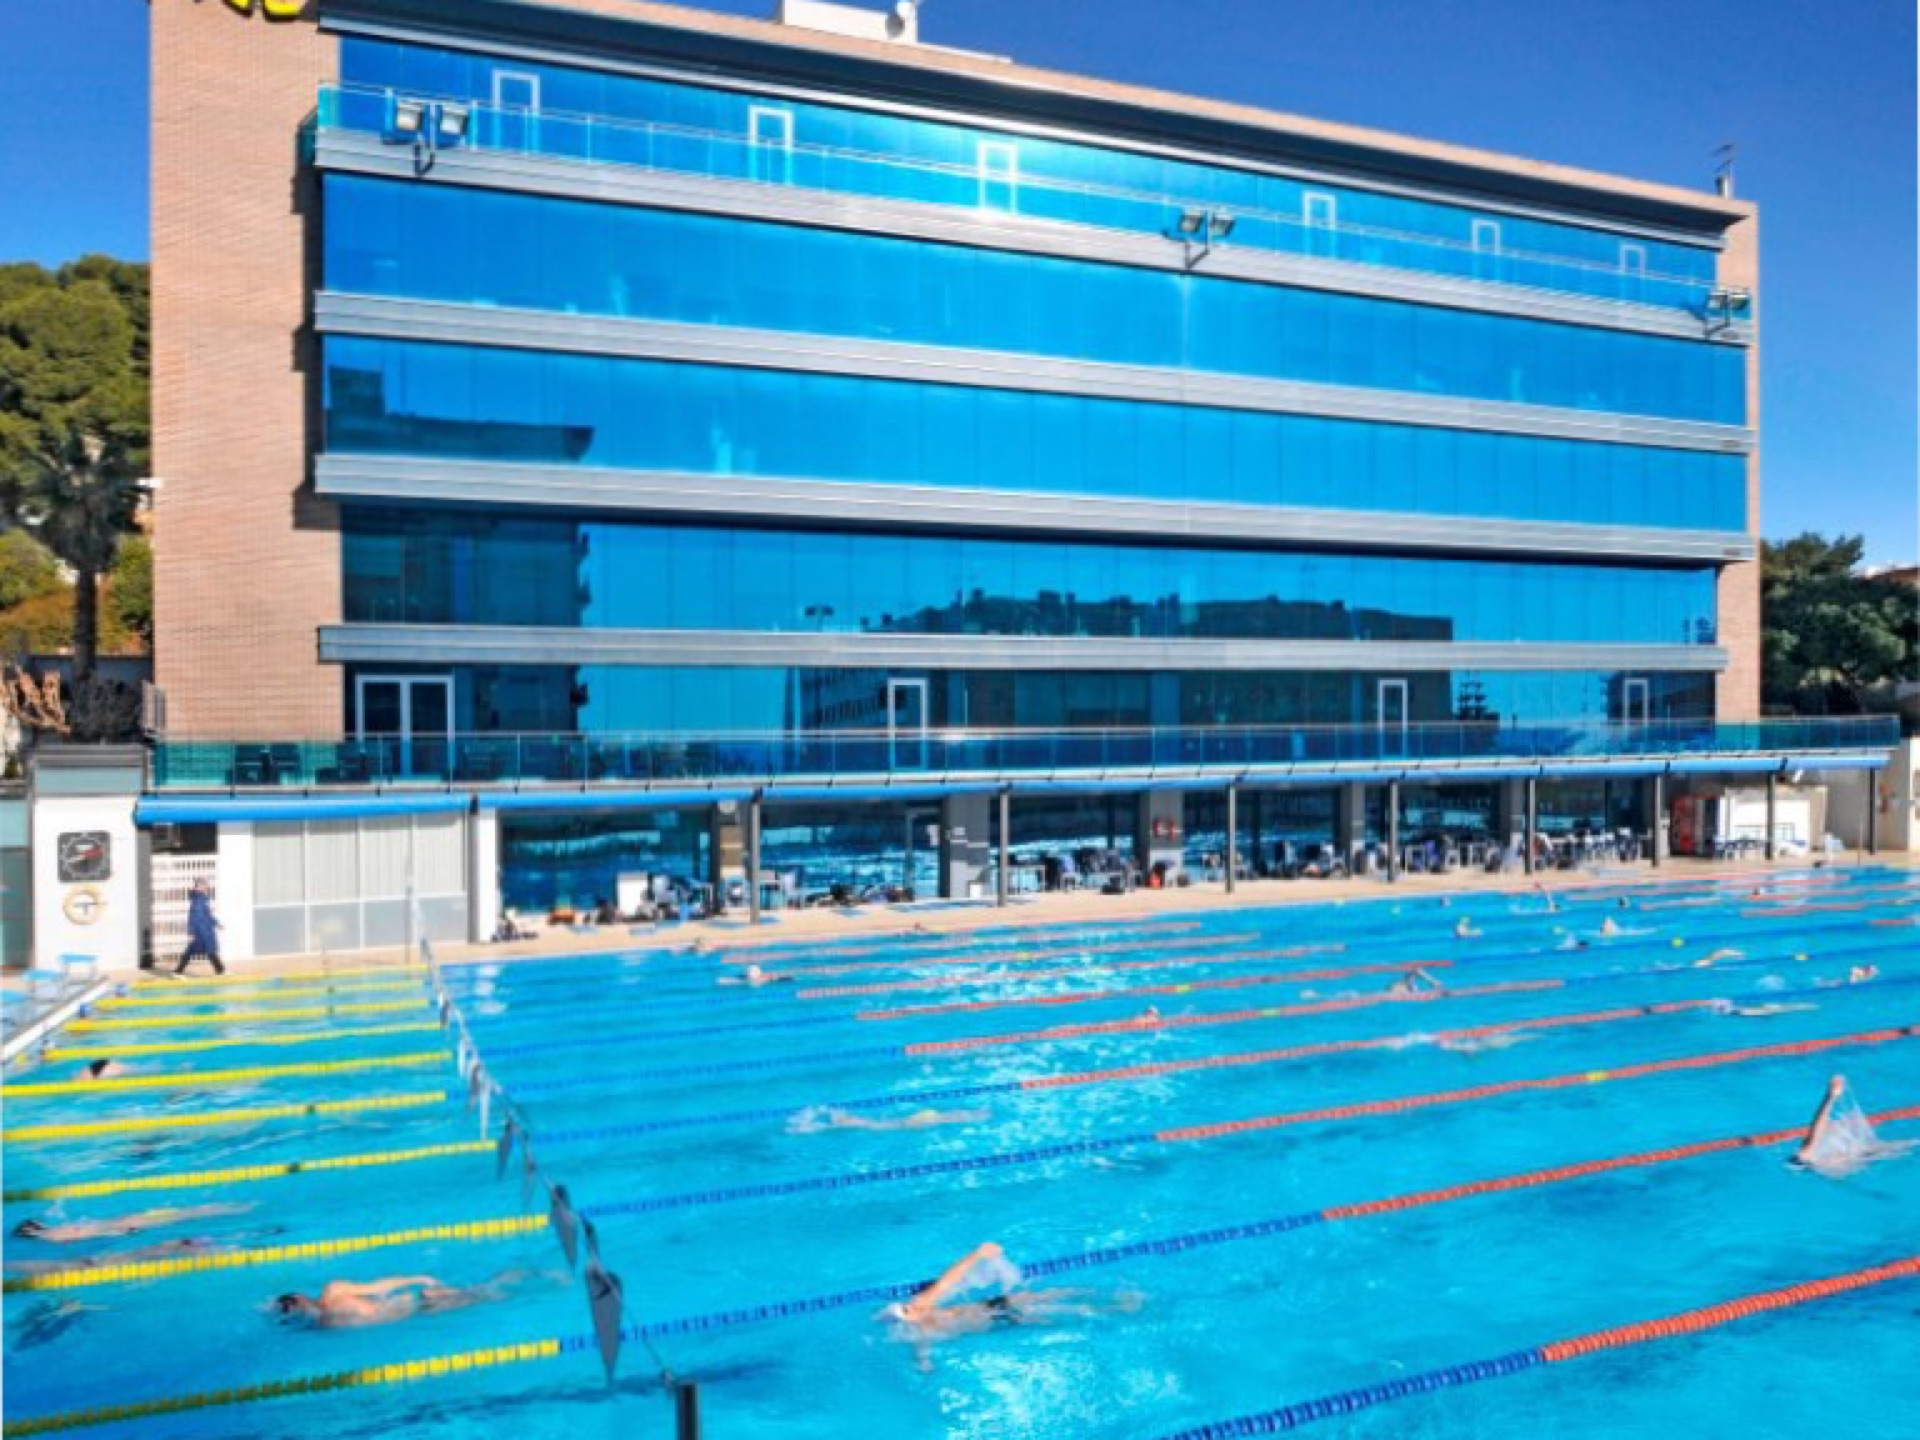 Calella olyimpic outdoor pool 1